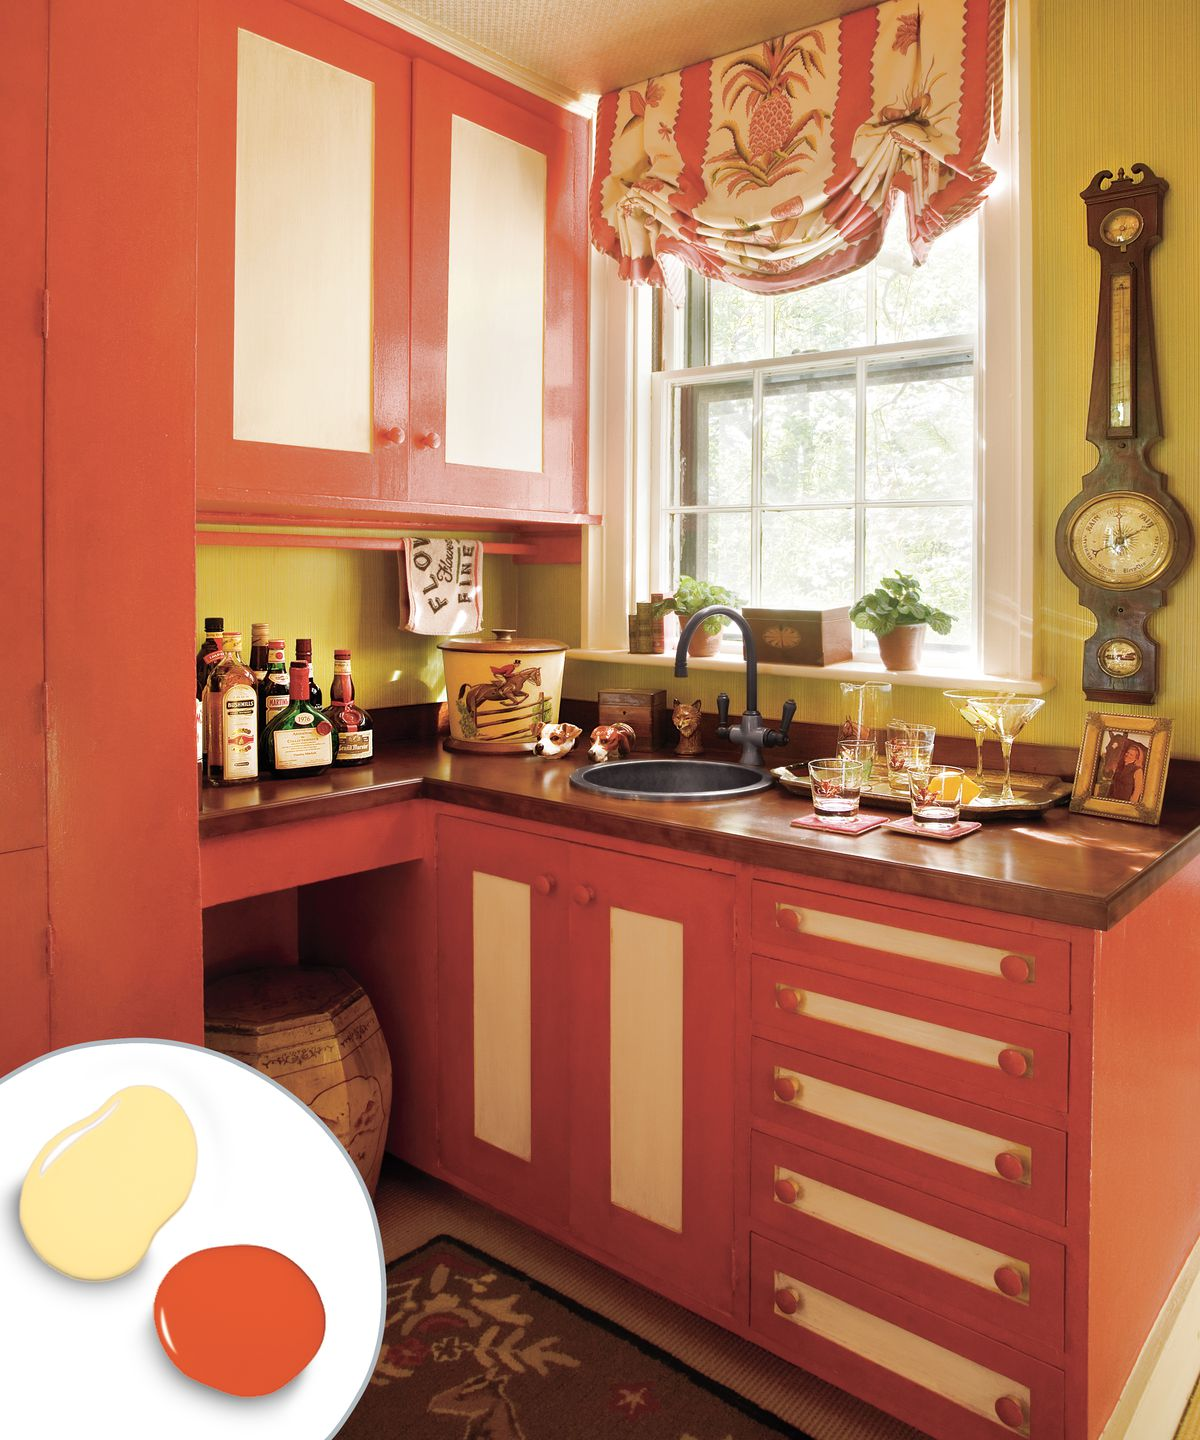 Two toned kitchen cabinet with red cabinets and yellow panels.